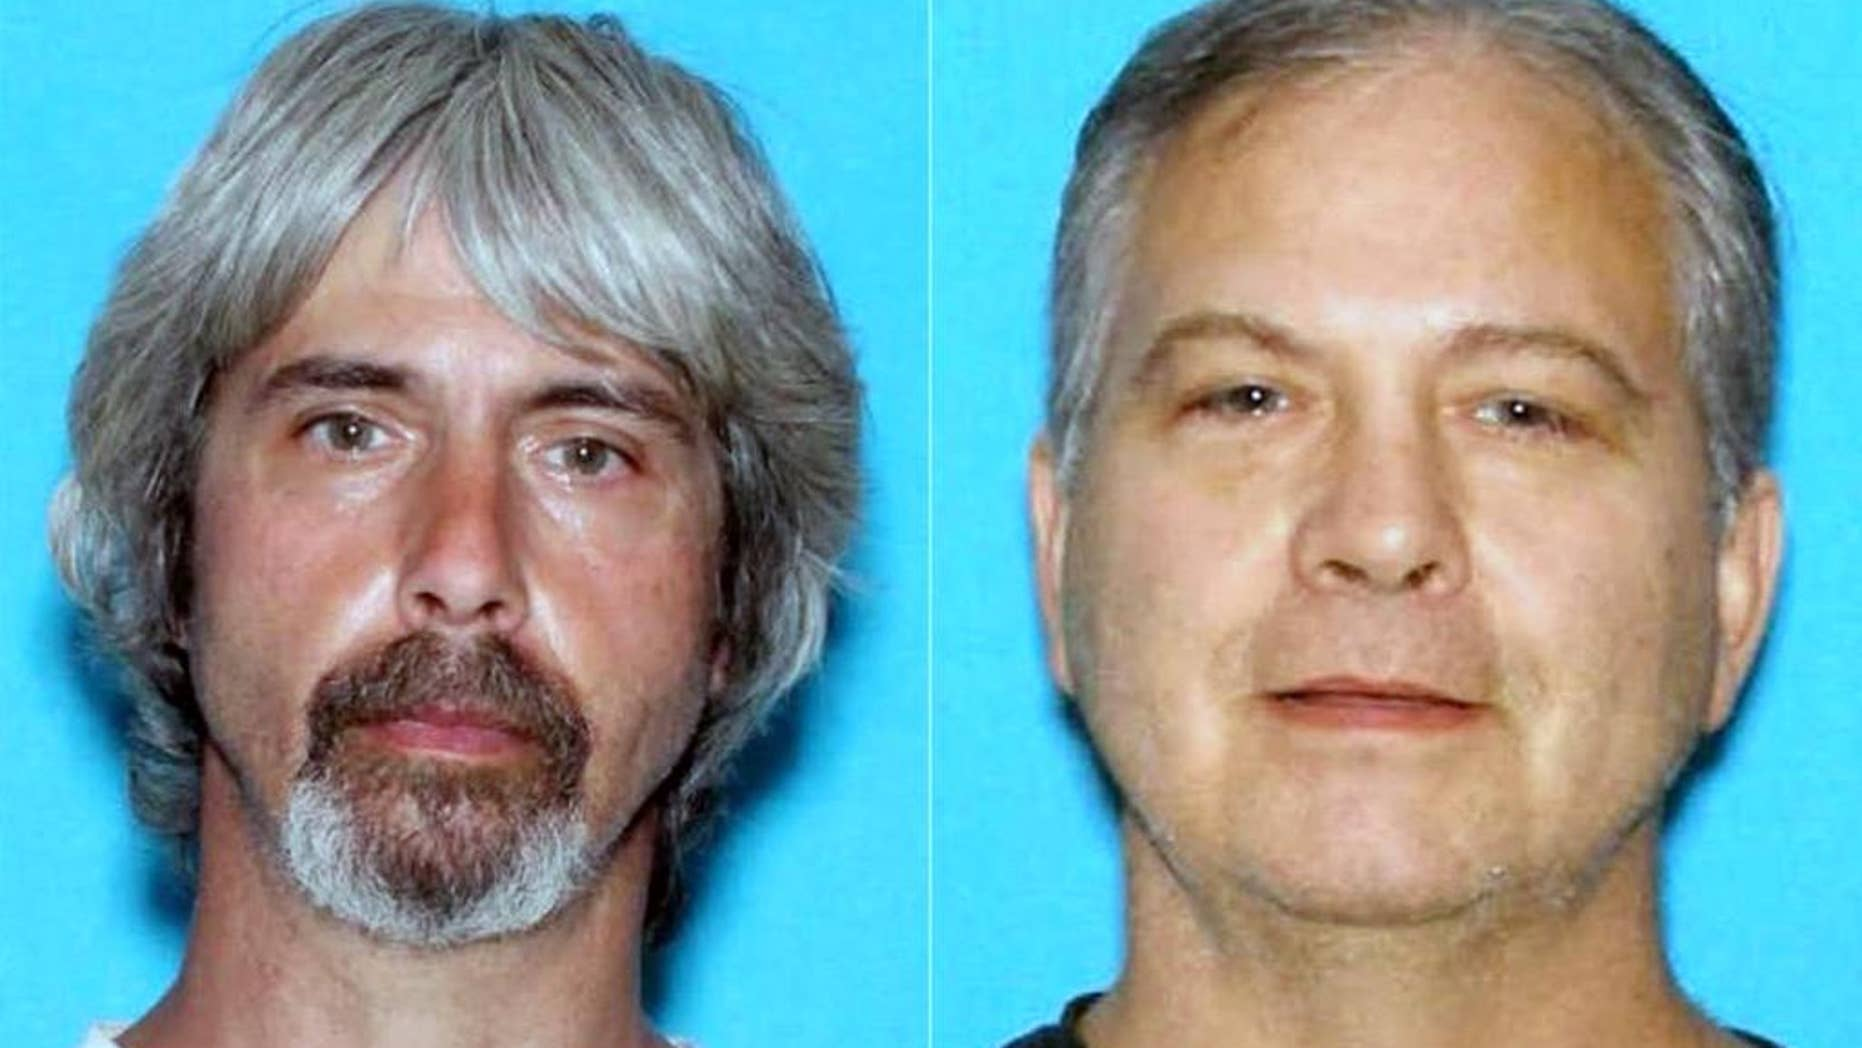 These undated booking photos provided by the Snohomish County Sheriff Office shows Tony Reed, left and John Reed. Authorities are searching for the two brothers who were involved in a property dispute with a missing Washington state couple. Neighbors reported Patrick Shunn and his wife, Monique Patenaude, of Arlington missing on Tuesday when their livestock was left unattended, and detectives in Snohomish County now believe they were killed. (Snohomish County Sheriff Office via AP )